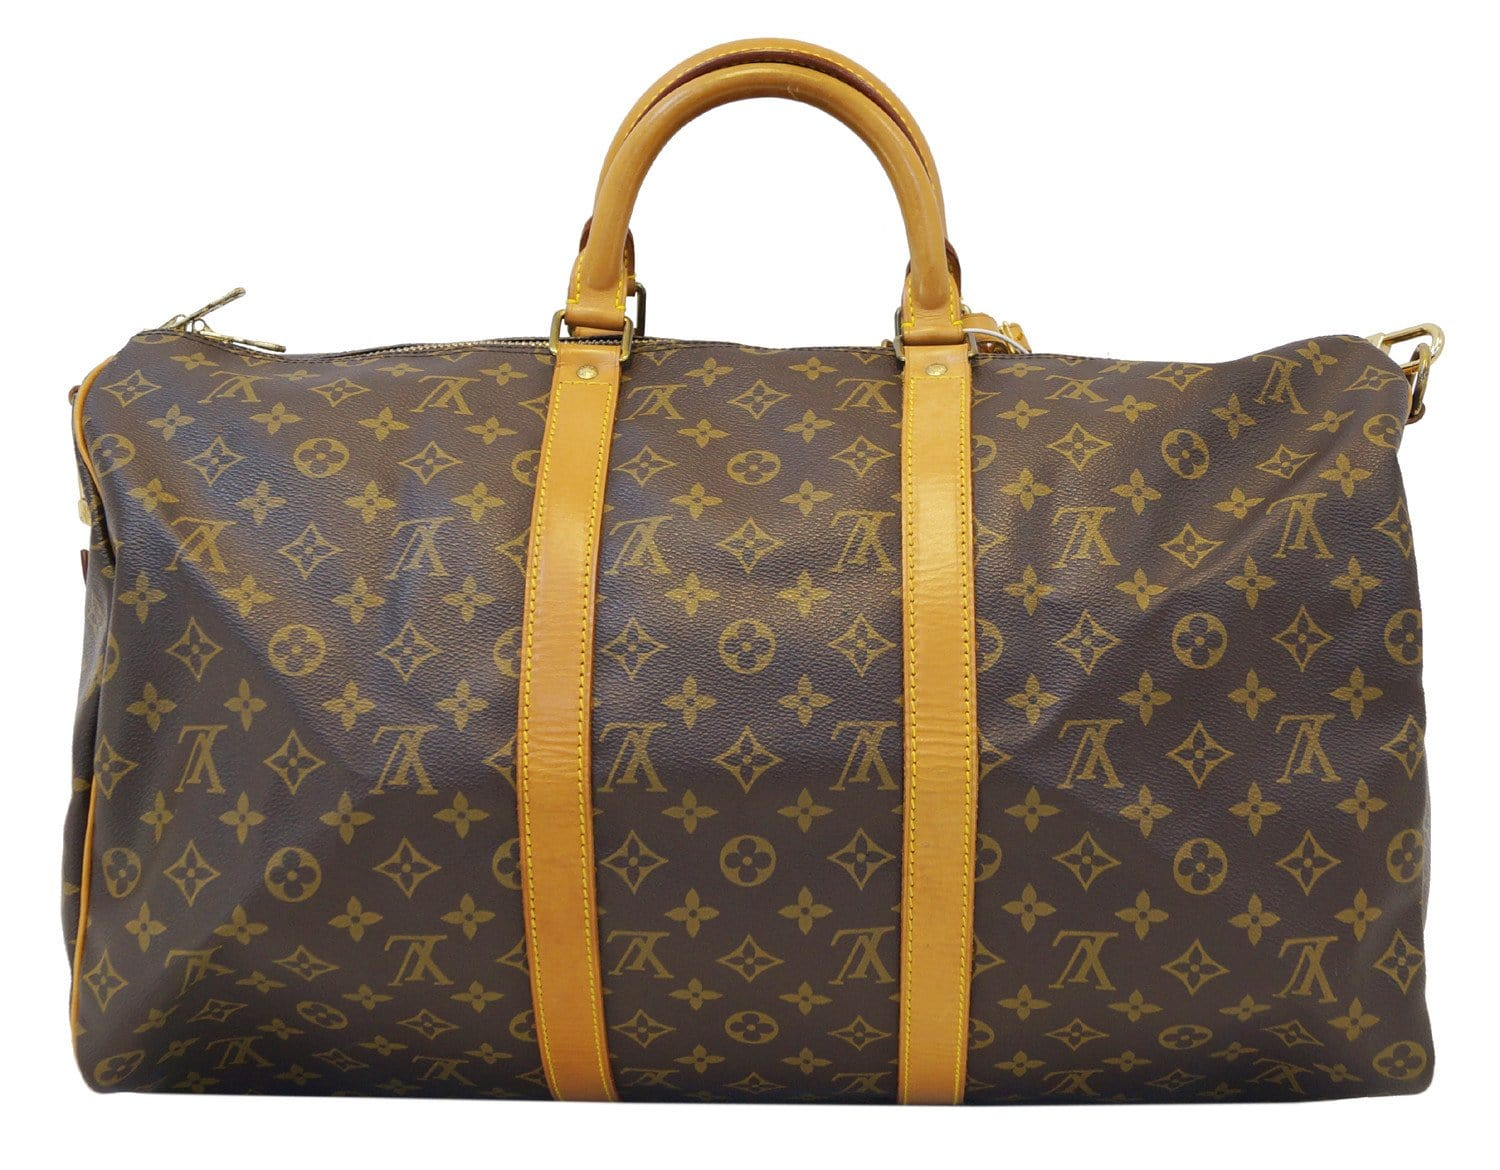 6fc0a8a57 LOUIS VUITTON Monogram Keepall Bandouliere 50 Travel Bag